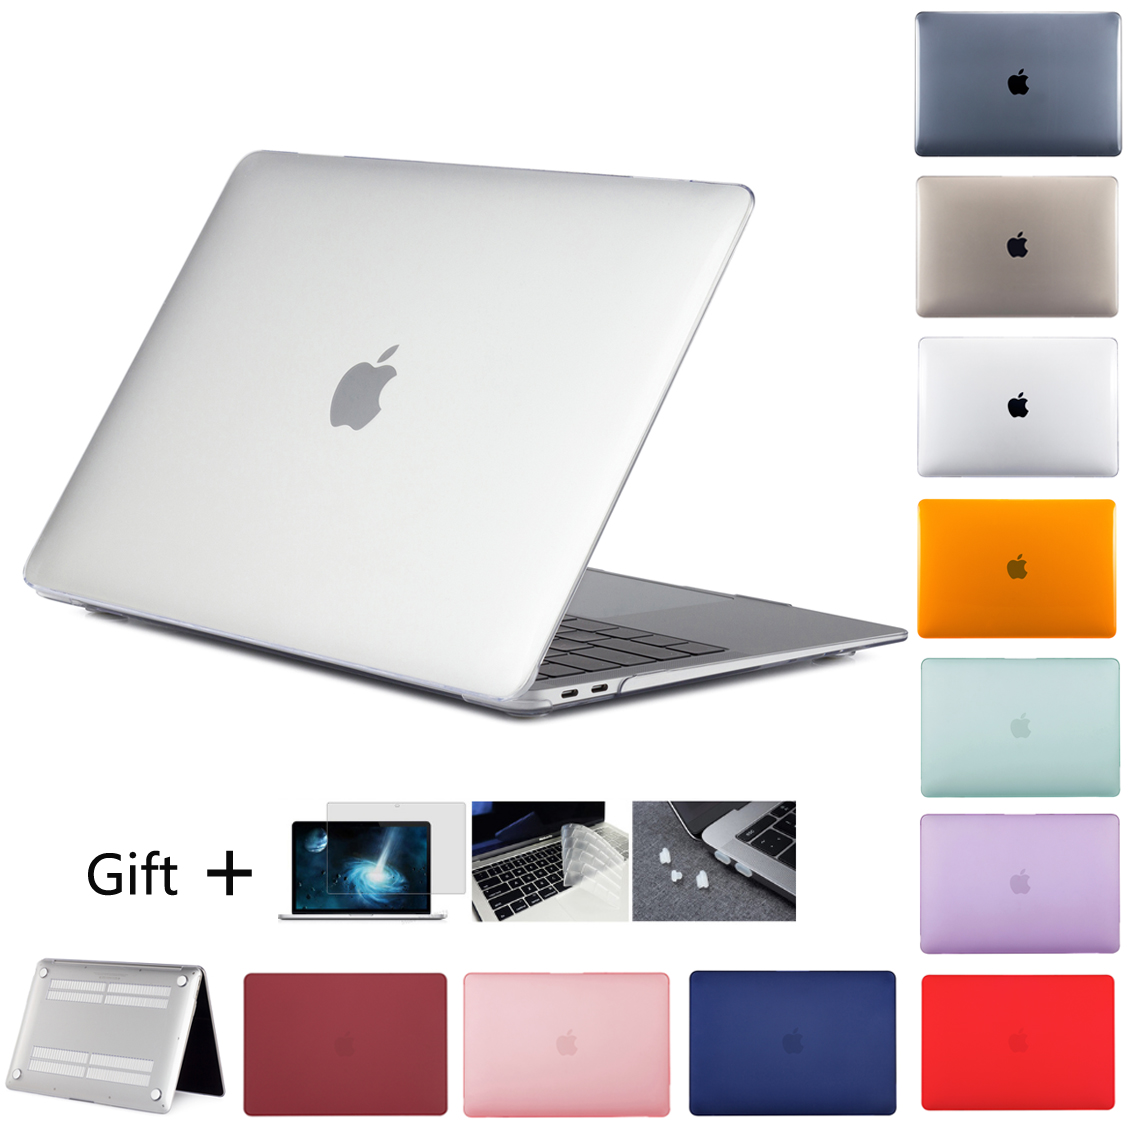 New CrystalMatte Case For Apple Macbook Air Pro Retina M1 Chip 11 12 13 15 16 inch ,Case For 2020 Pro13 A2338 A2289 A2179+gift 1